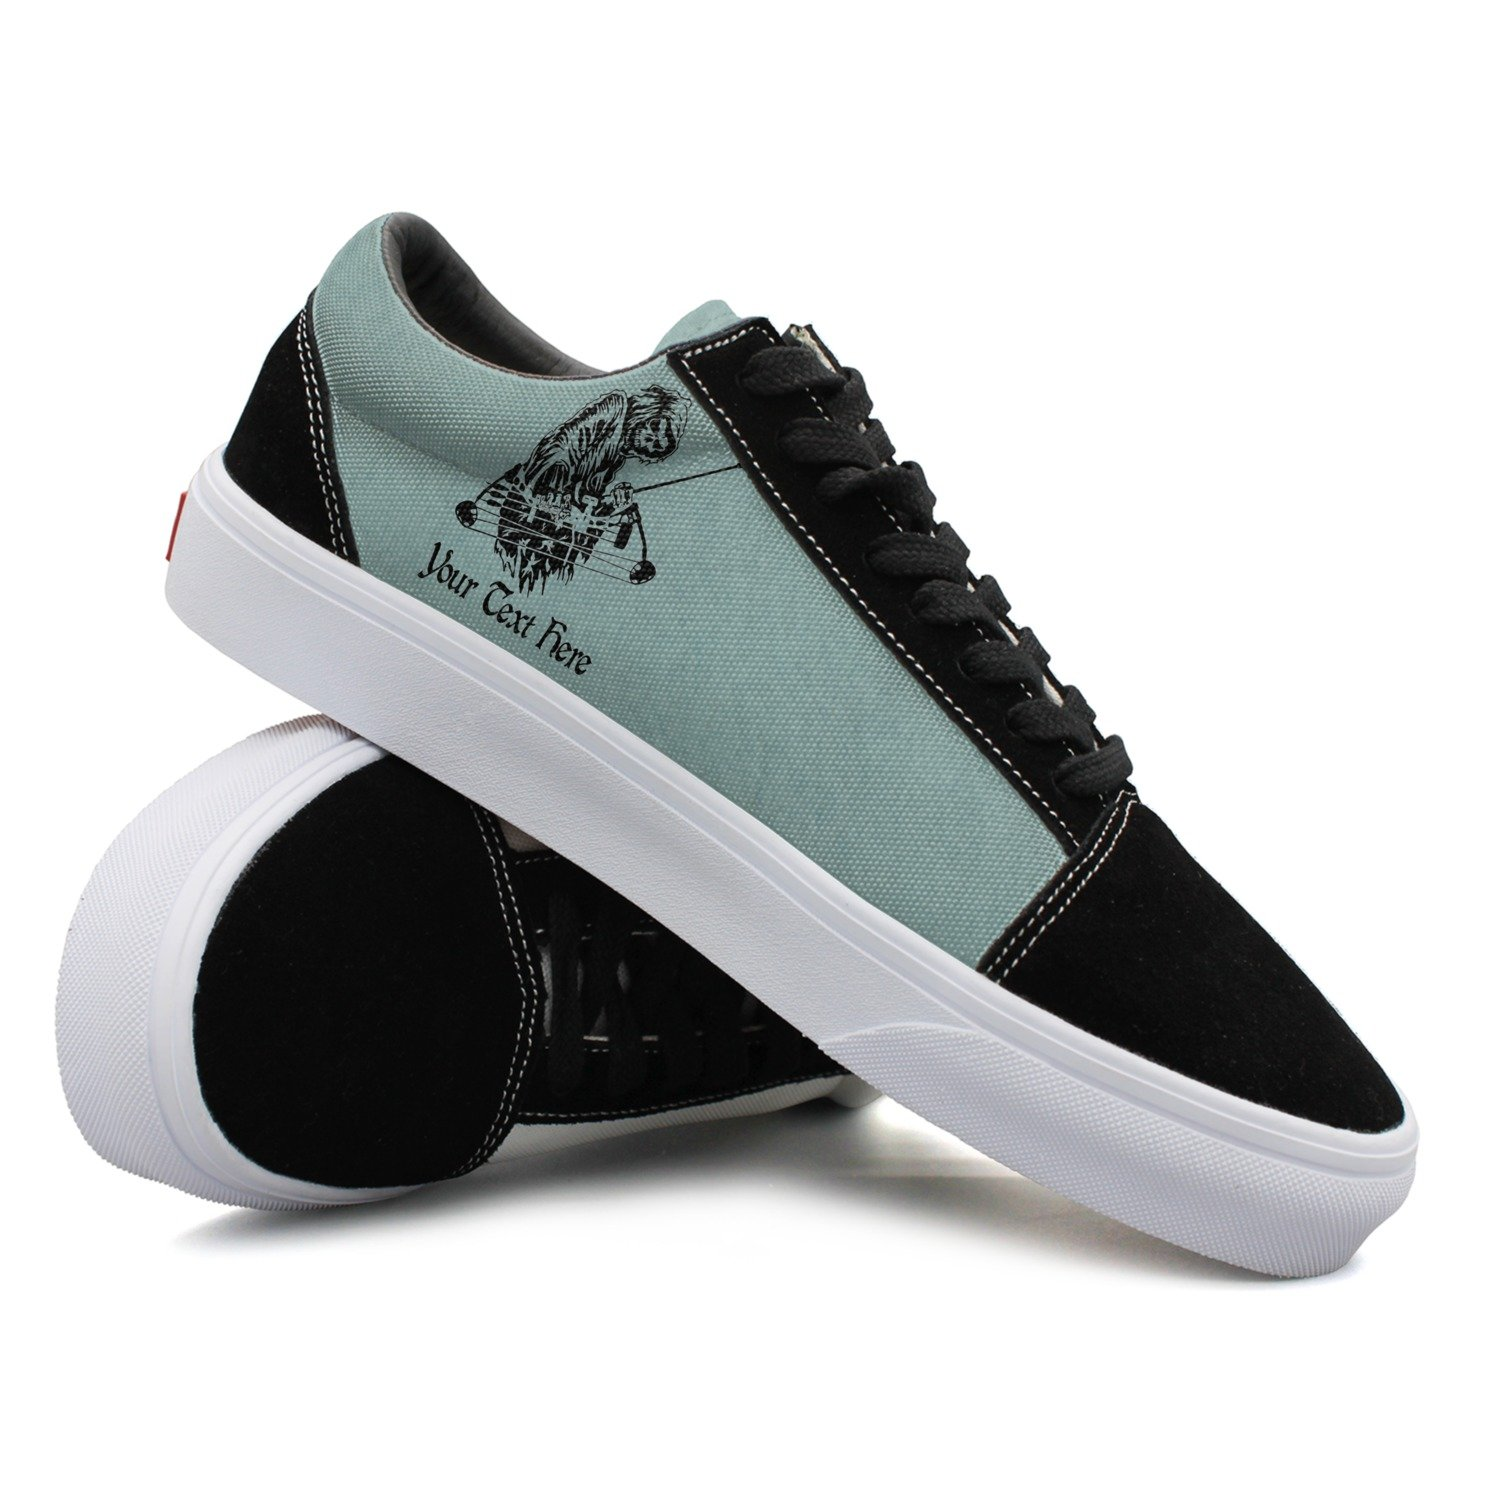 You Cext Here Casual Sneakers Footwear Cool Fashion Vegan